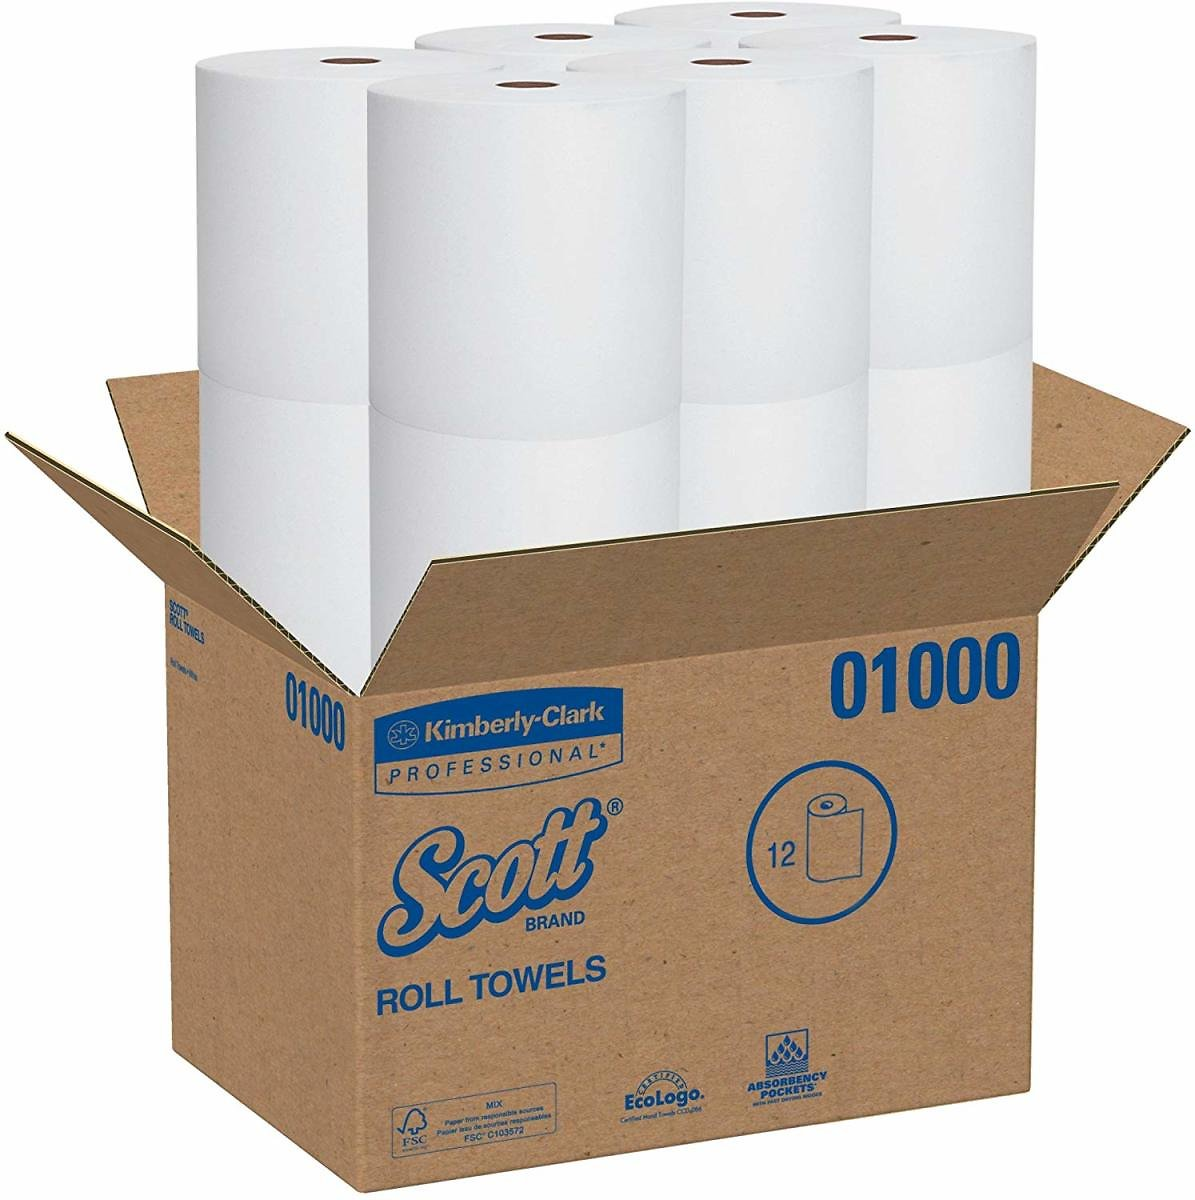 Scott High Capacity Hard Roll Paper Towels (01000), White, 12 Paper Towel Rolls / Case, 1,000' / Roll, 12,000' / Case